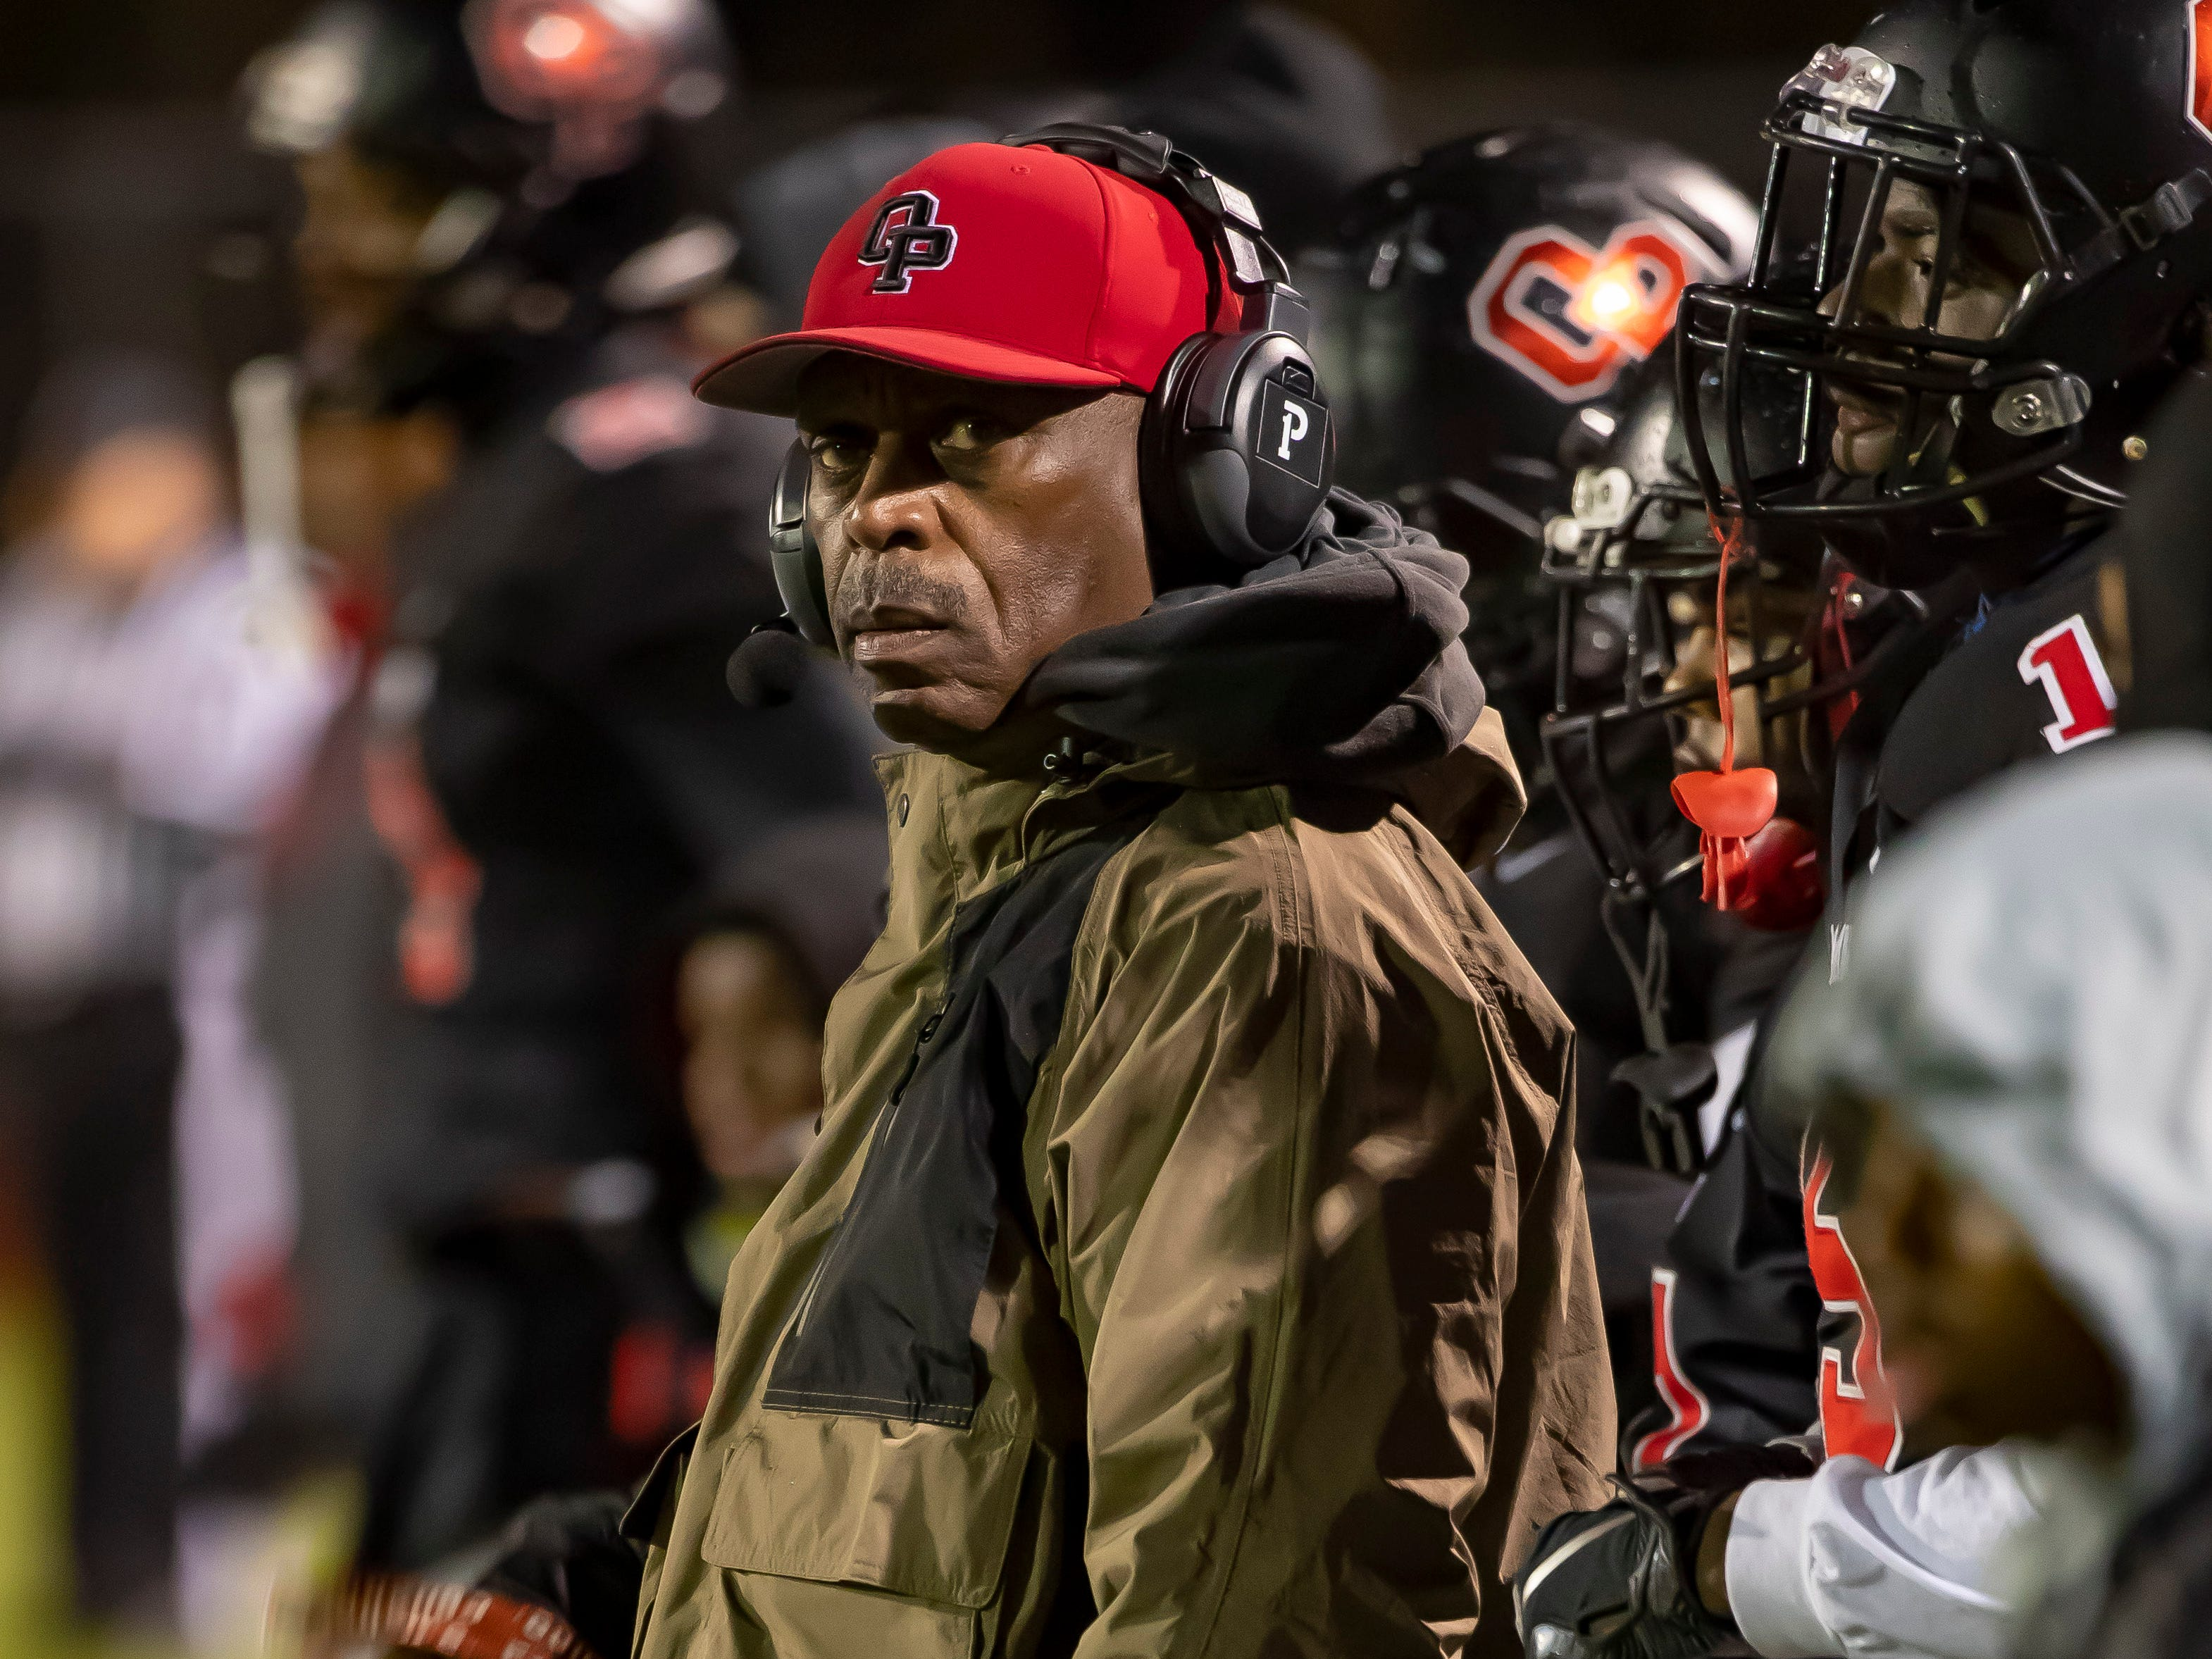 Oak Park head coach Greg Carter watches the action from the sidelines in the fourth quarter.